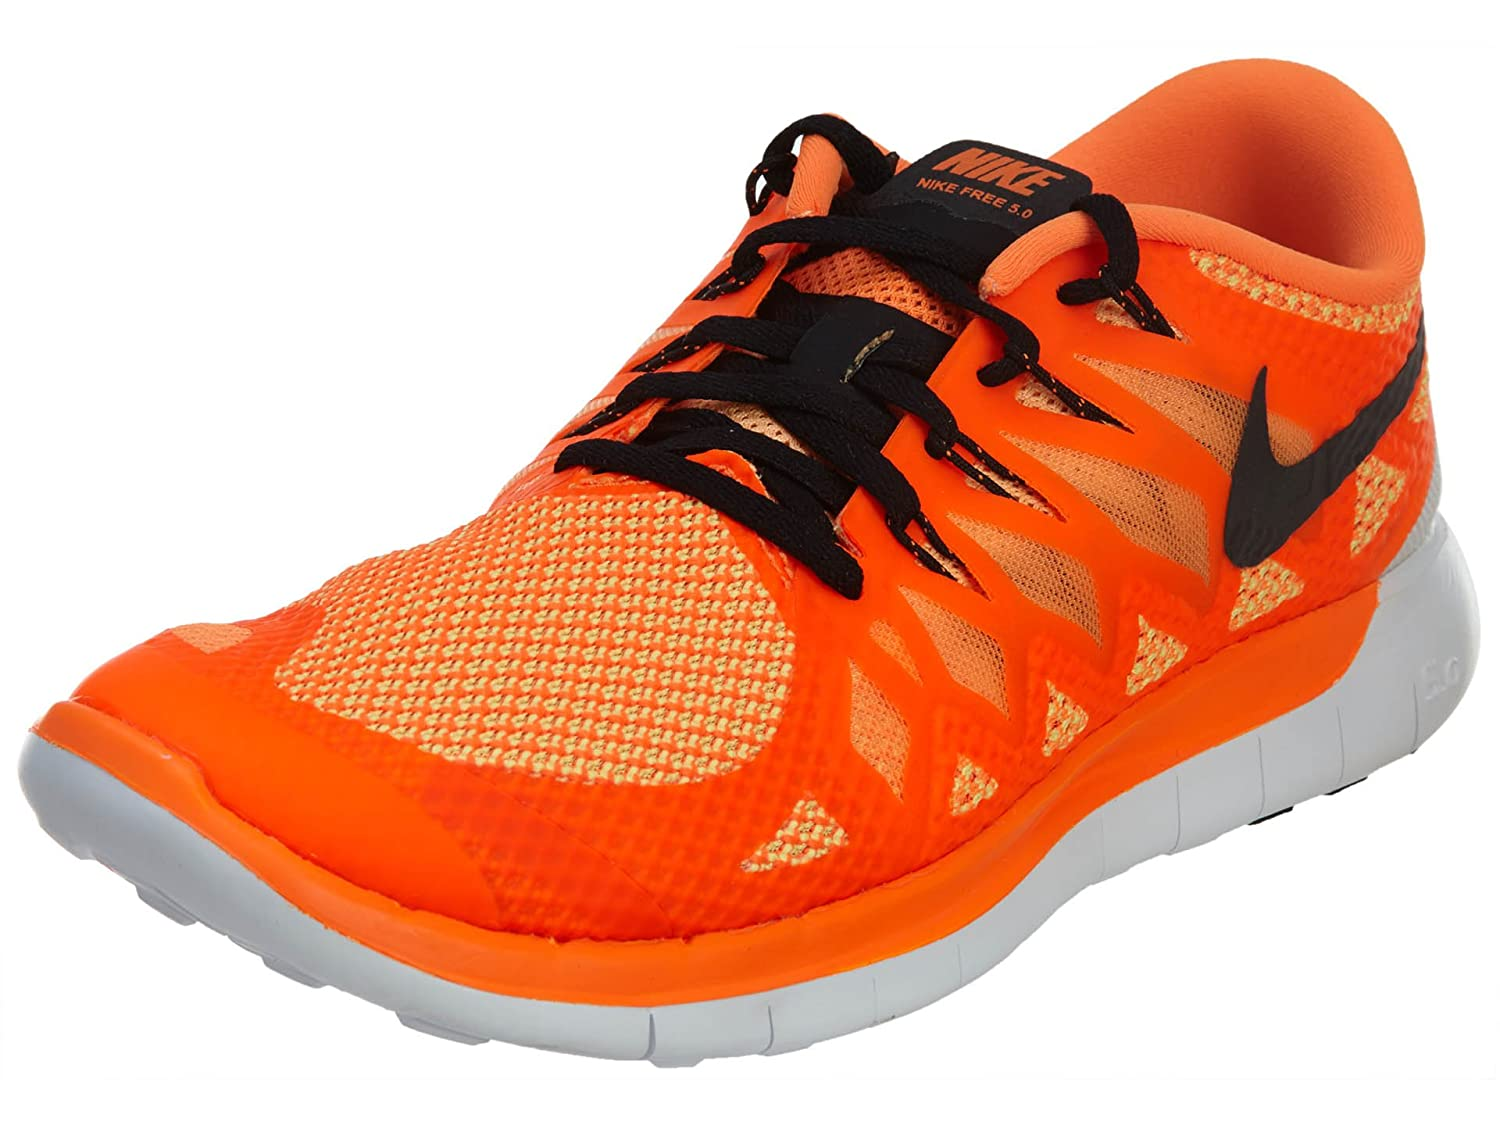 hot sale online 56352 6372b Nike Free 5.0 Men's Running Shoes Sneakers Total Orange/Black-Bright Ctrs  11 D(M) US: Buy Online at Low Prices in India - Amazon.in